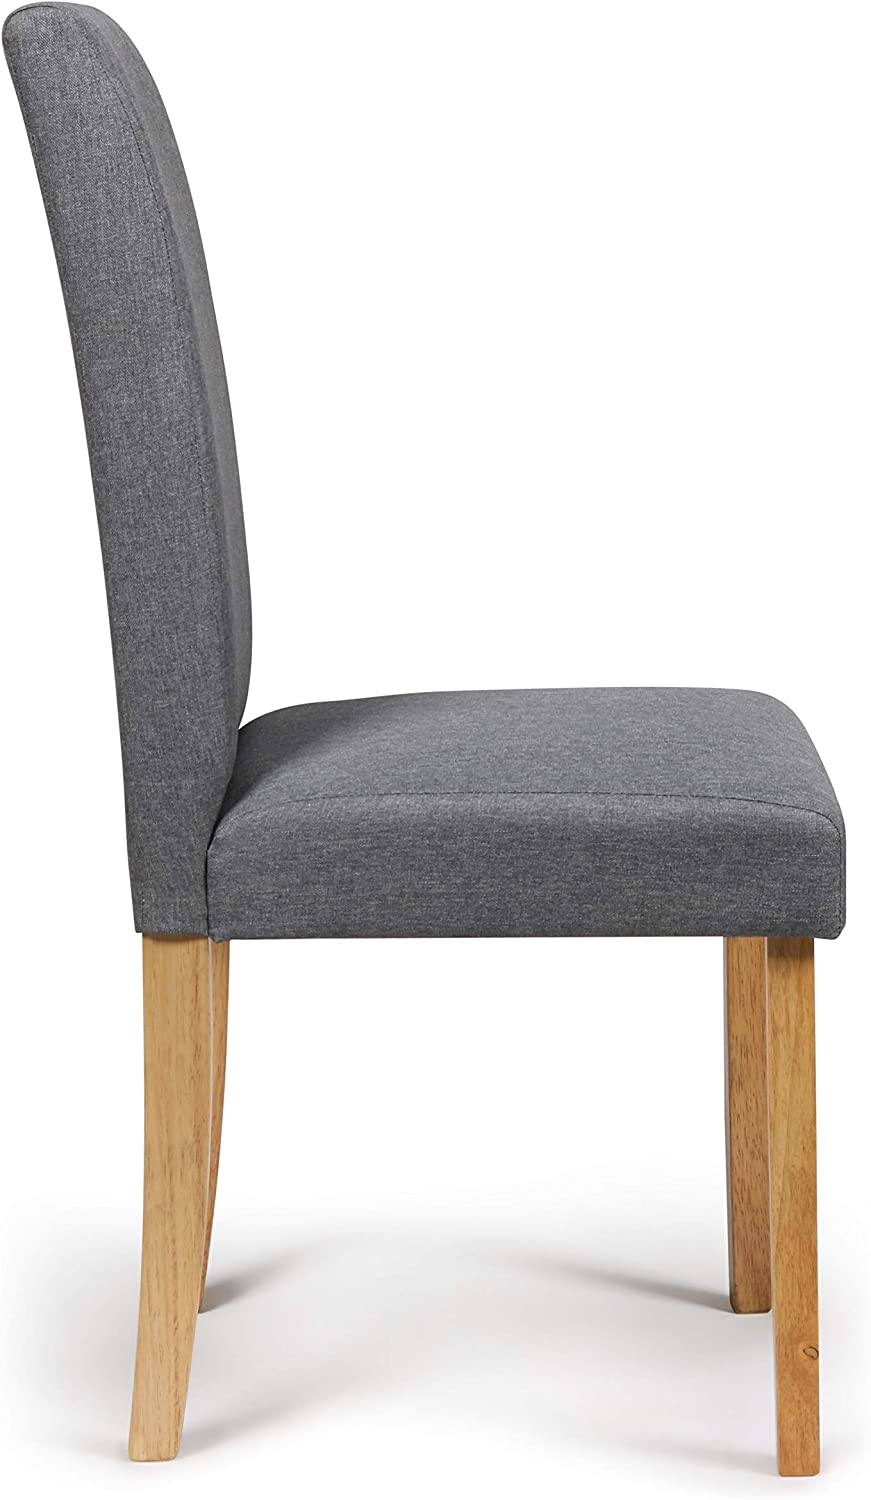 2 Dining Chairs Grey Marl Fabric Torino With Padded Seat